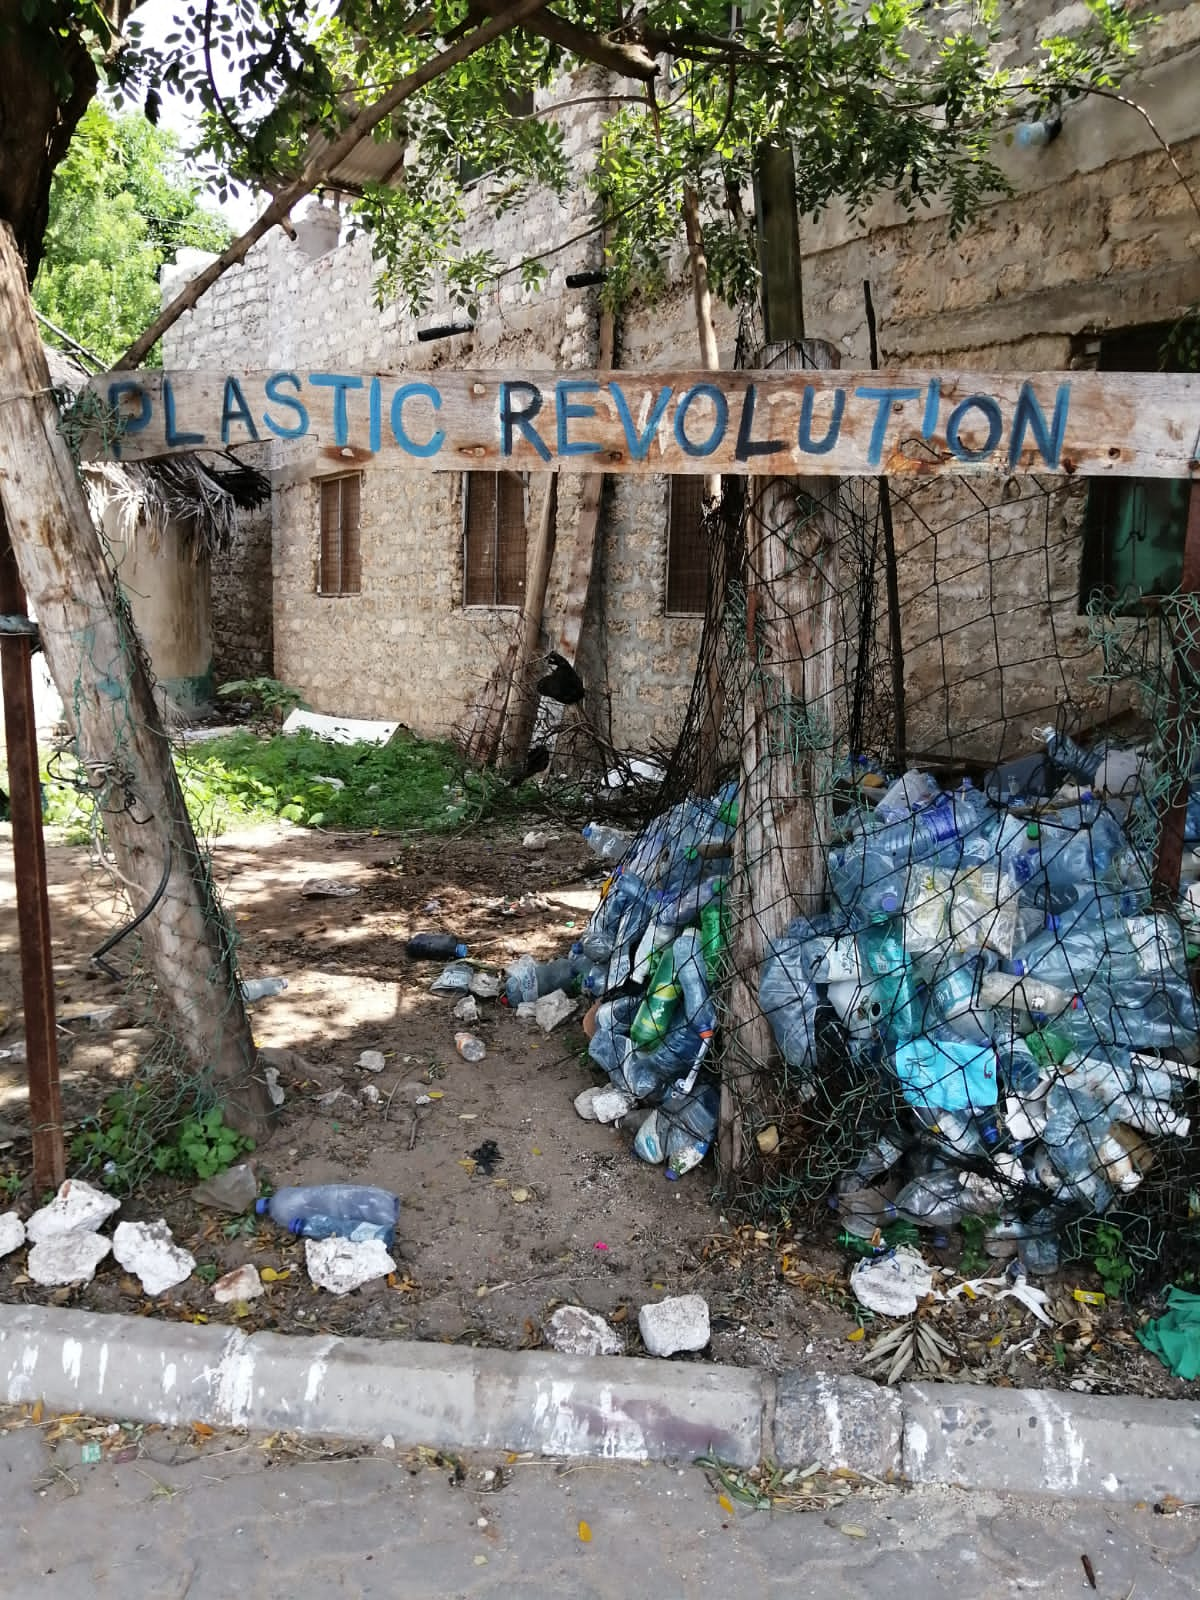 CONSUMER HABITS THROUGH COLLECTION OF PLASTIC BOTTLES